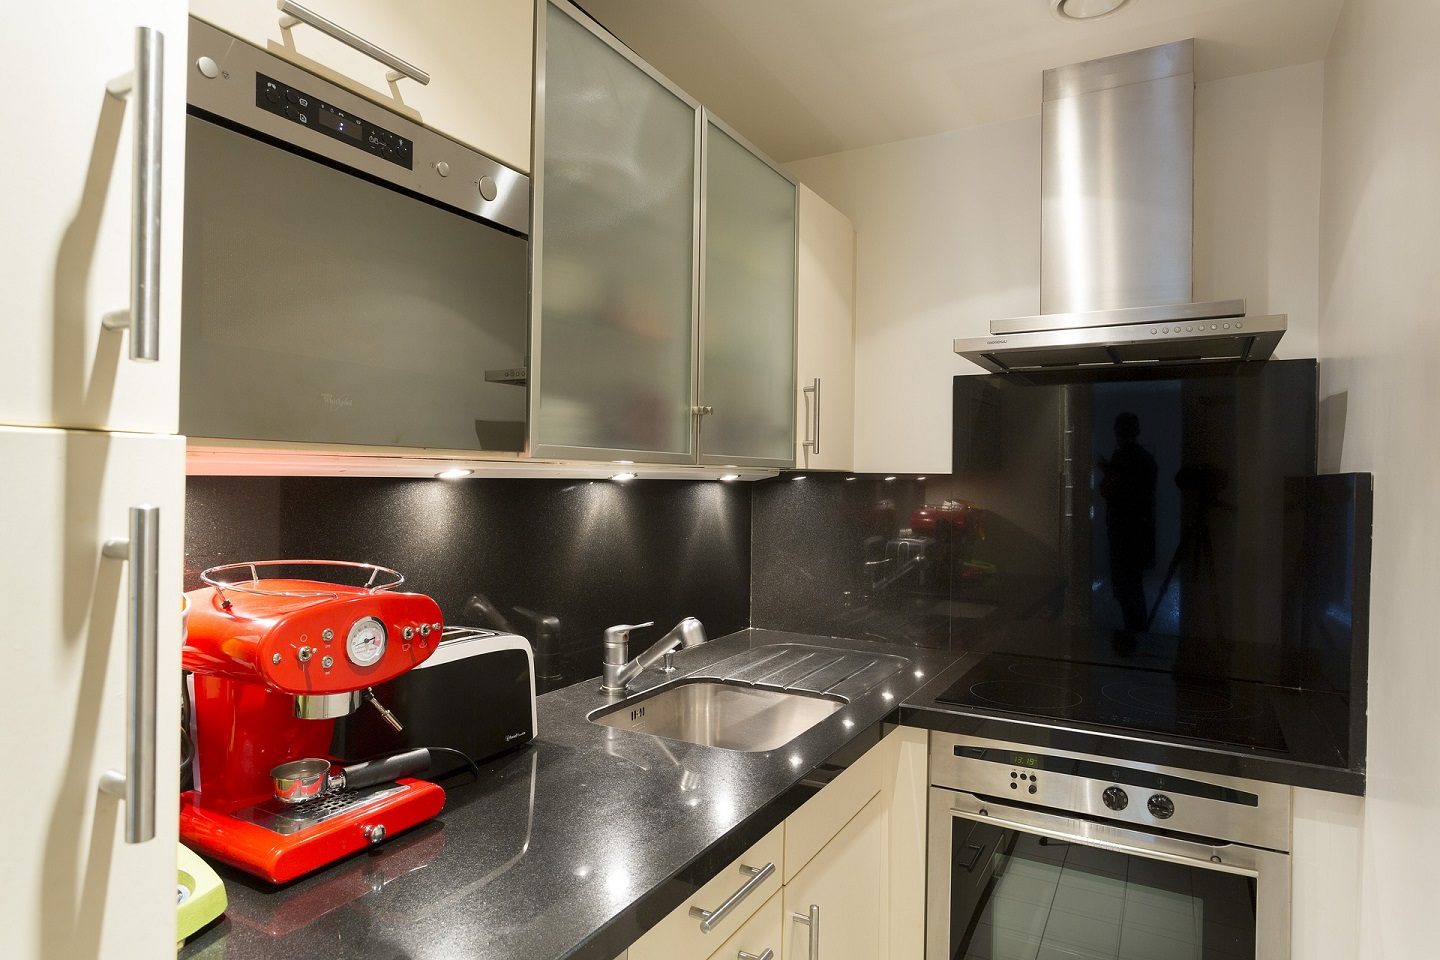 You will be surprised how much kitchen space you will be able to save with the right appliances